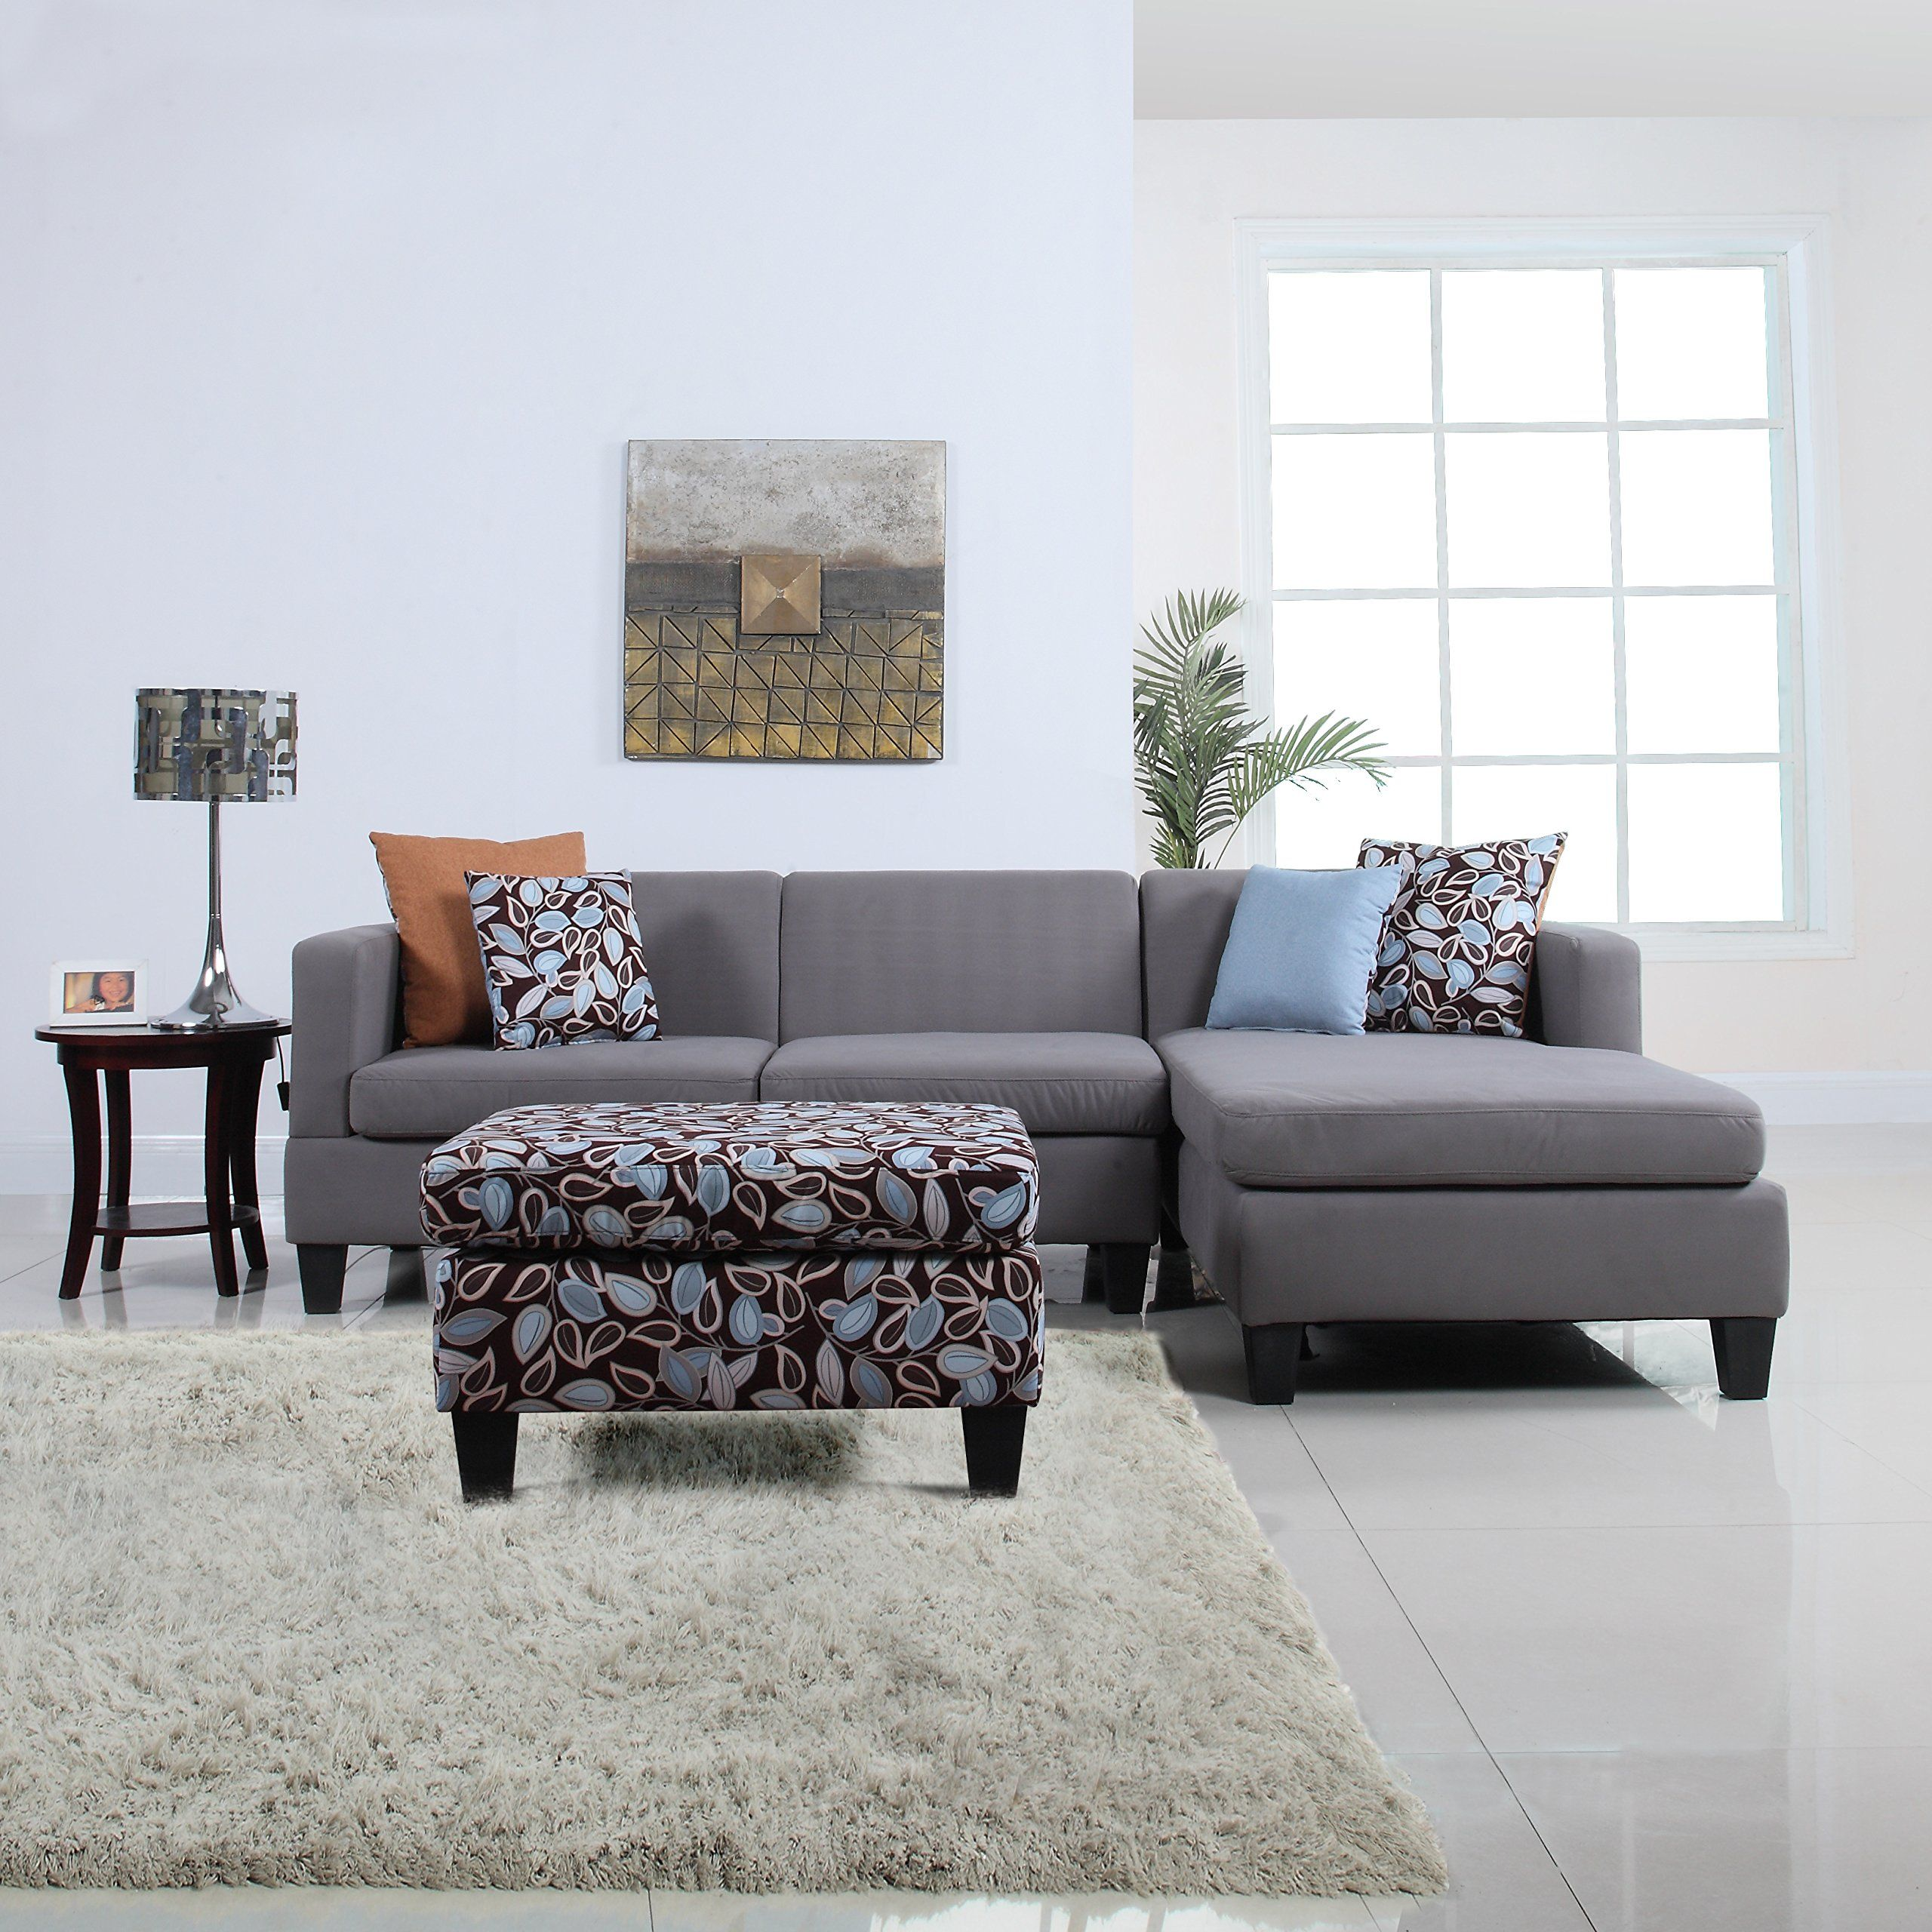 Best 3 Piece Modern Grey Sectional Sofa With Ottoman And Floral 400 x 300